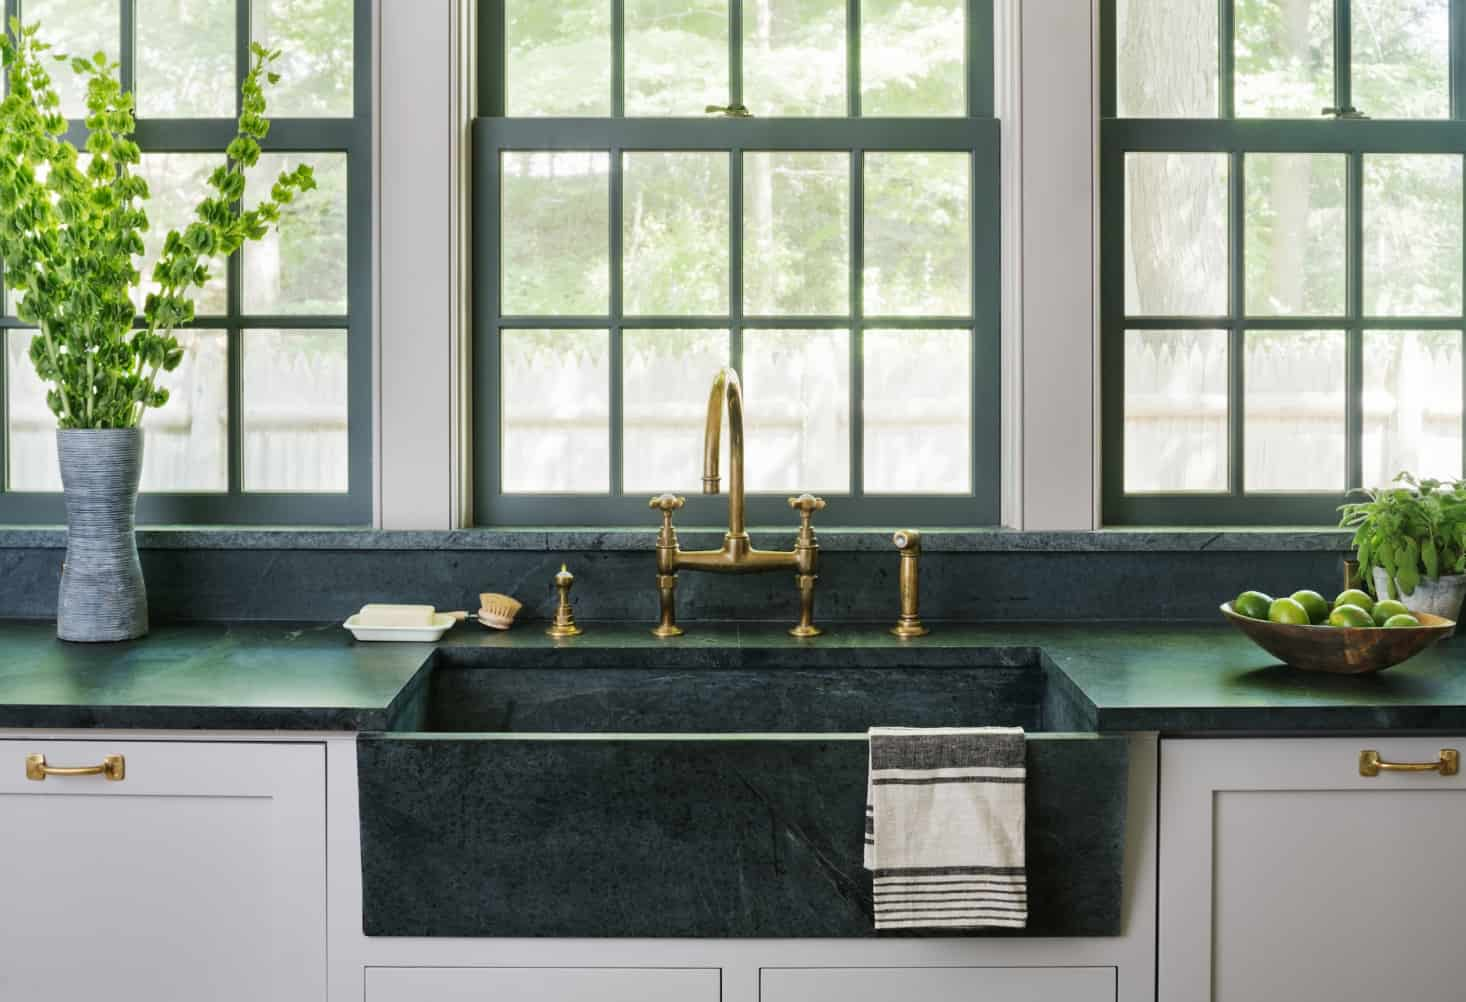 soapstone sinks Gorgeous Kitchen Trends That Are All the Rage